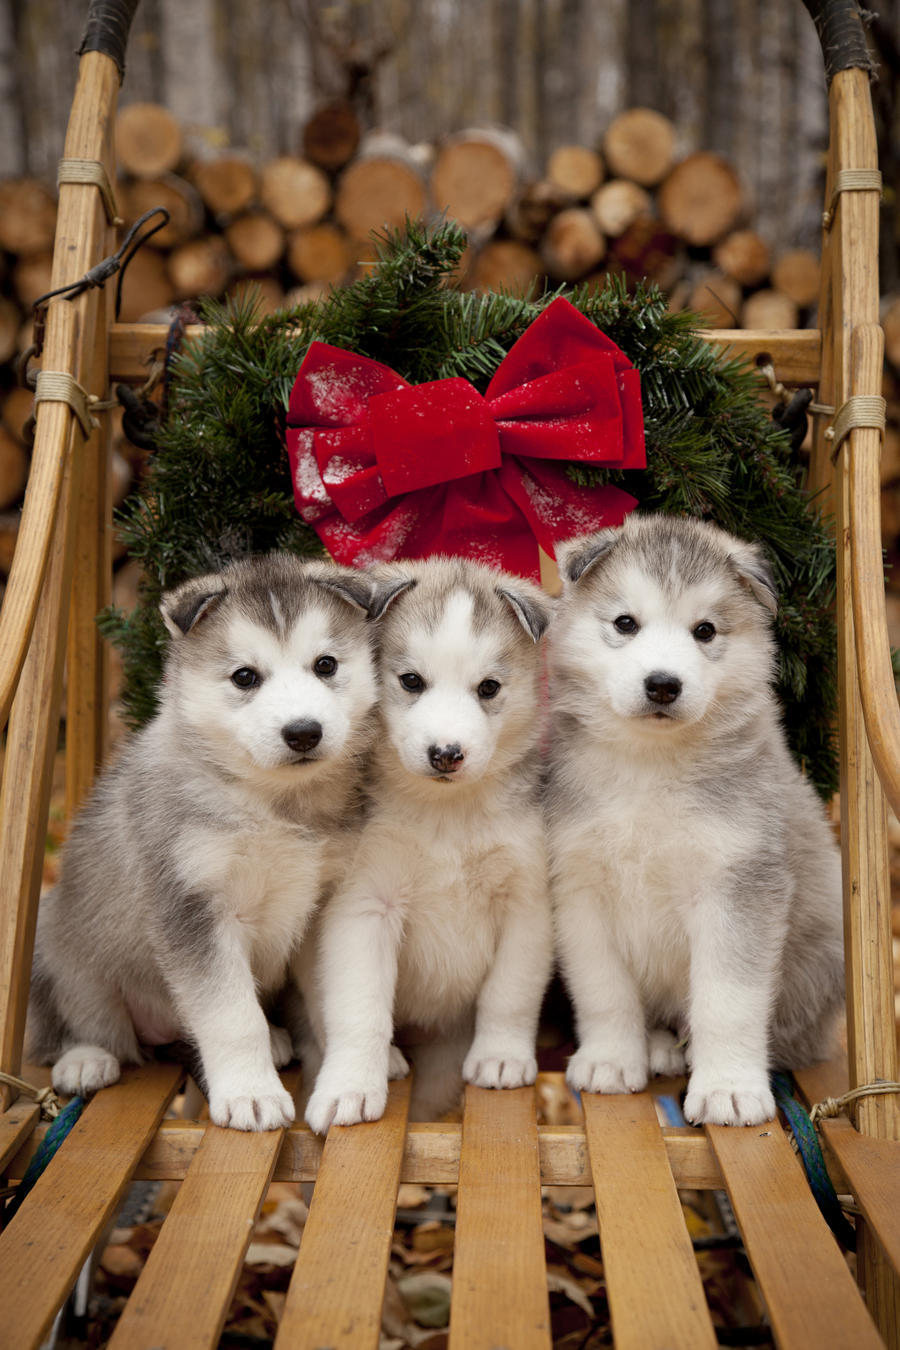 Pink Wallpaper With Cute Puppy Golden Retriever Siberian Husky Puppies In Traditional Wooden Dog Sled With